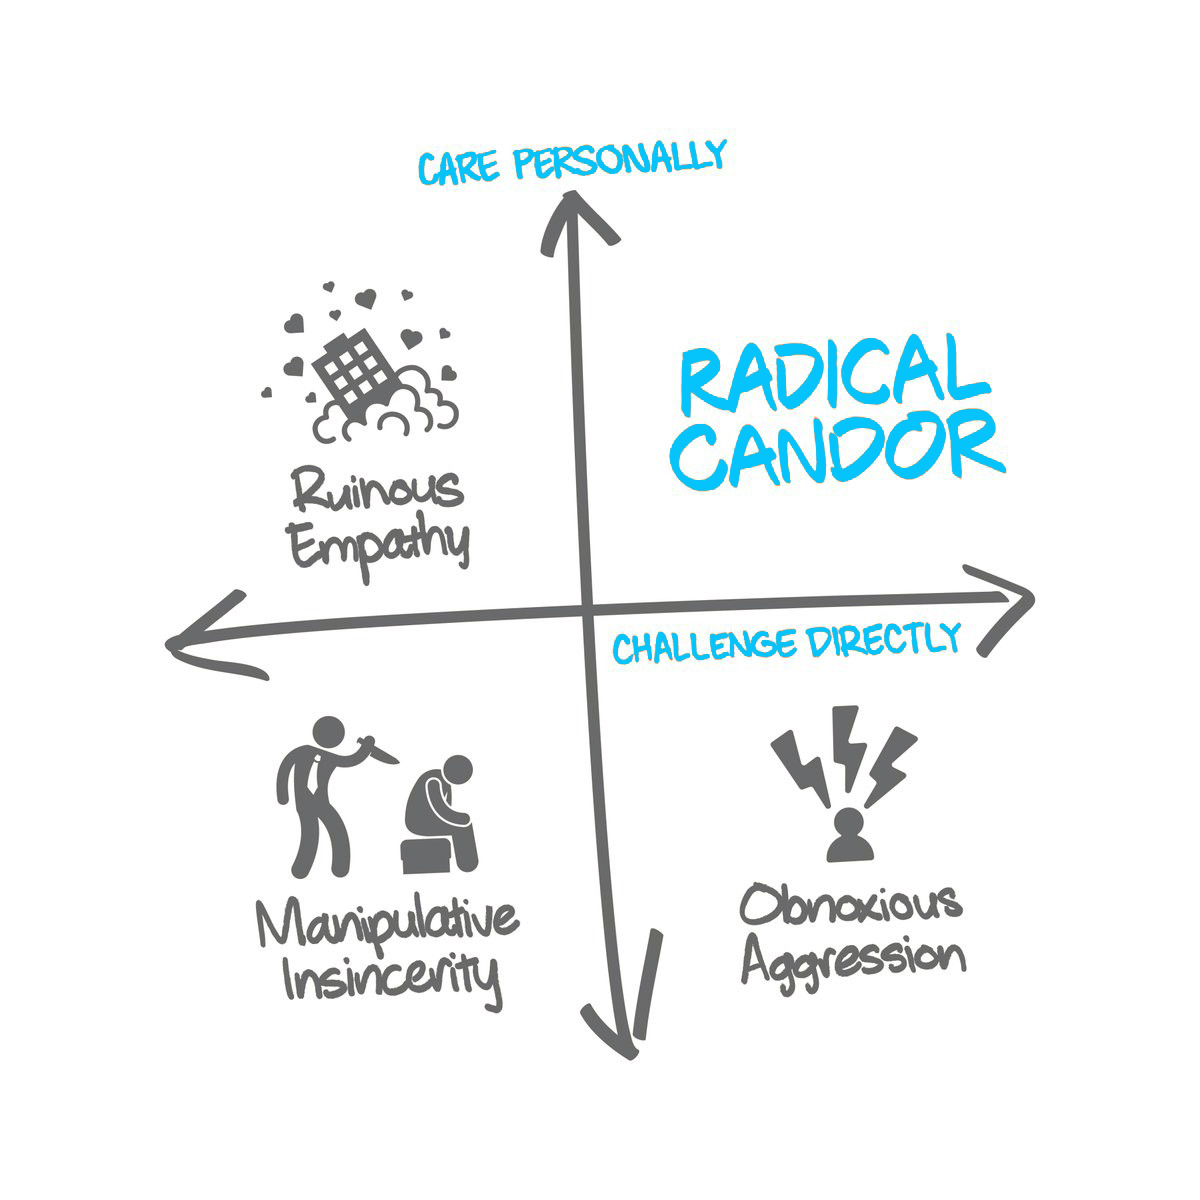 Kim Scott's framework for feedback in her book Radical Candor